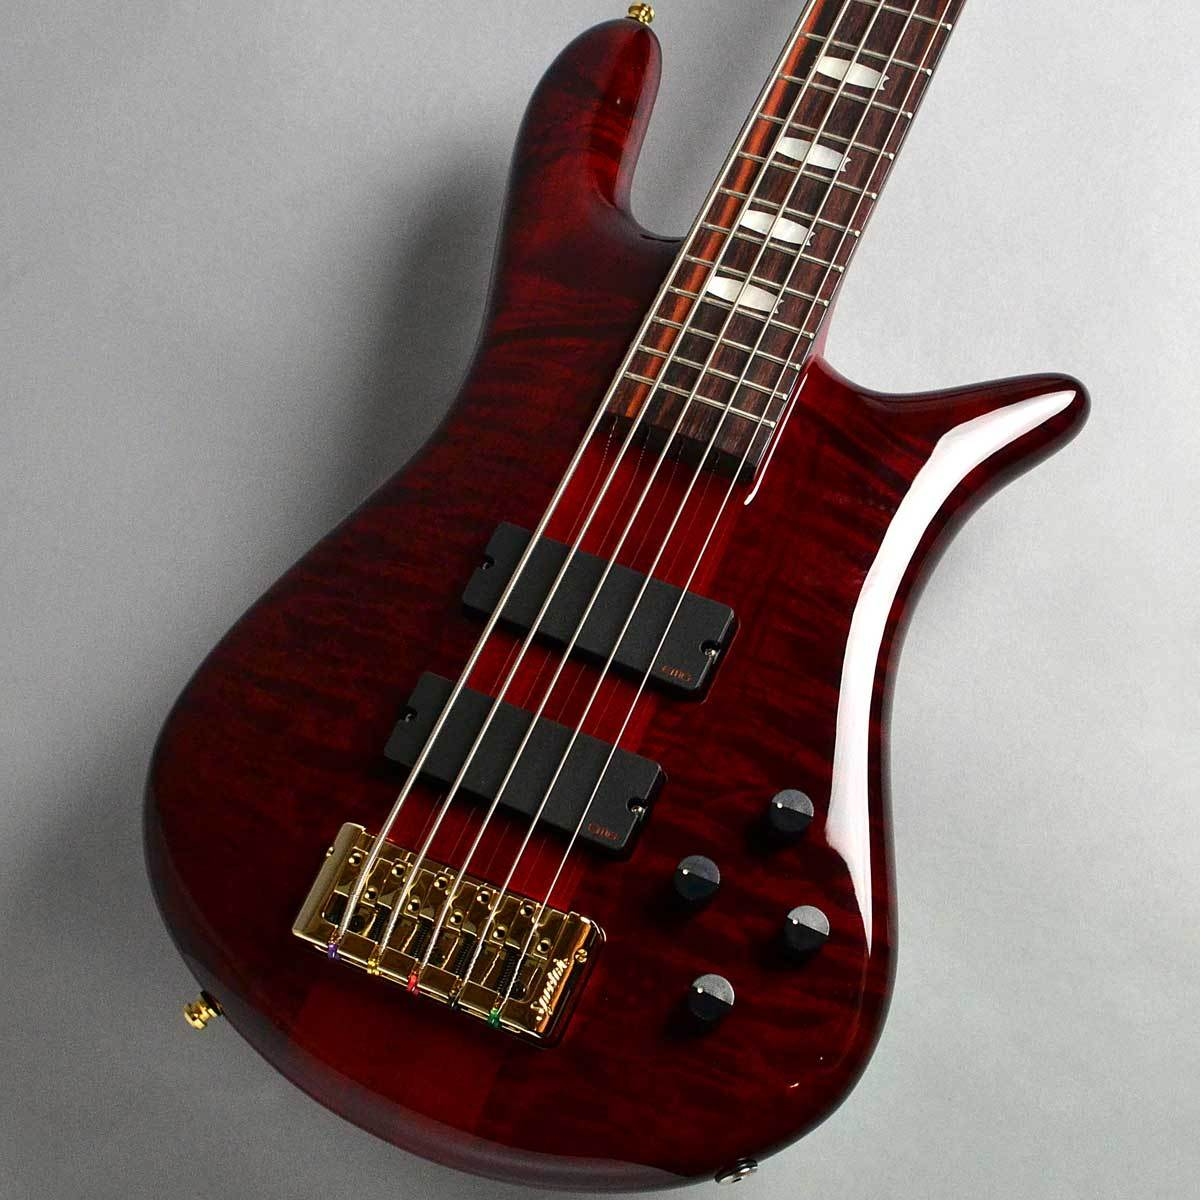 Spector EURO 5 LX Premium Wood/Black Cherry Gloss エレキベース(5弦) 【スペクター】【新宿PePe店】